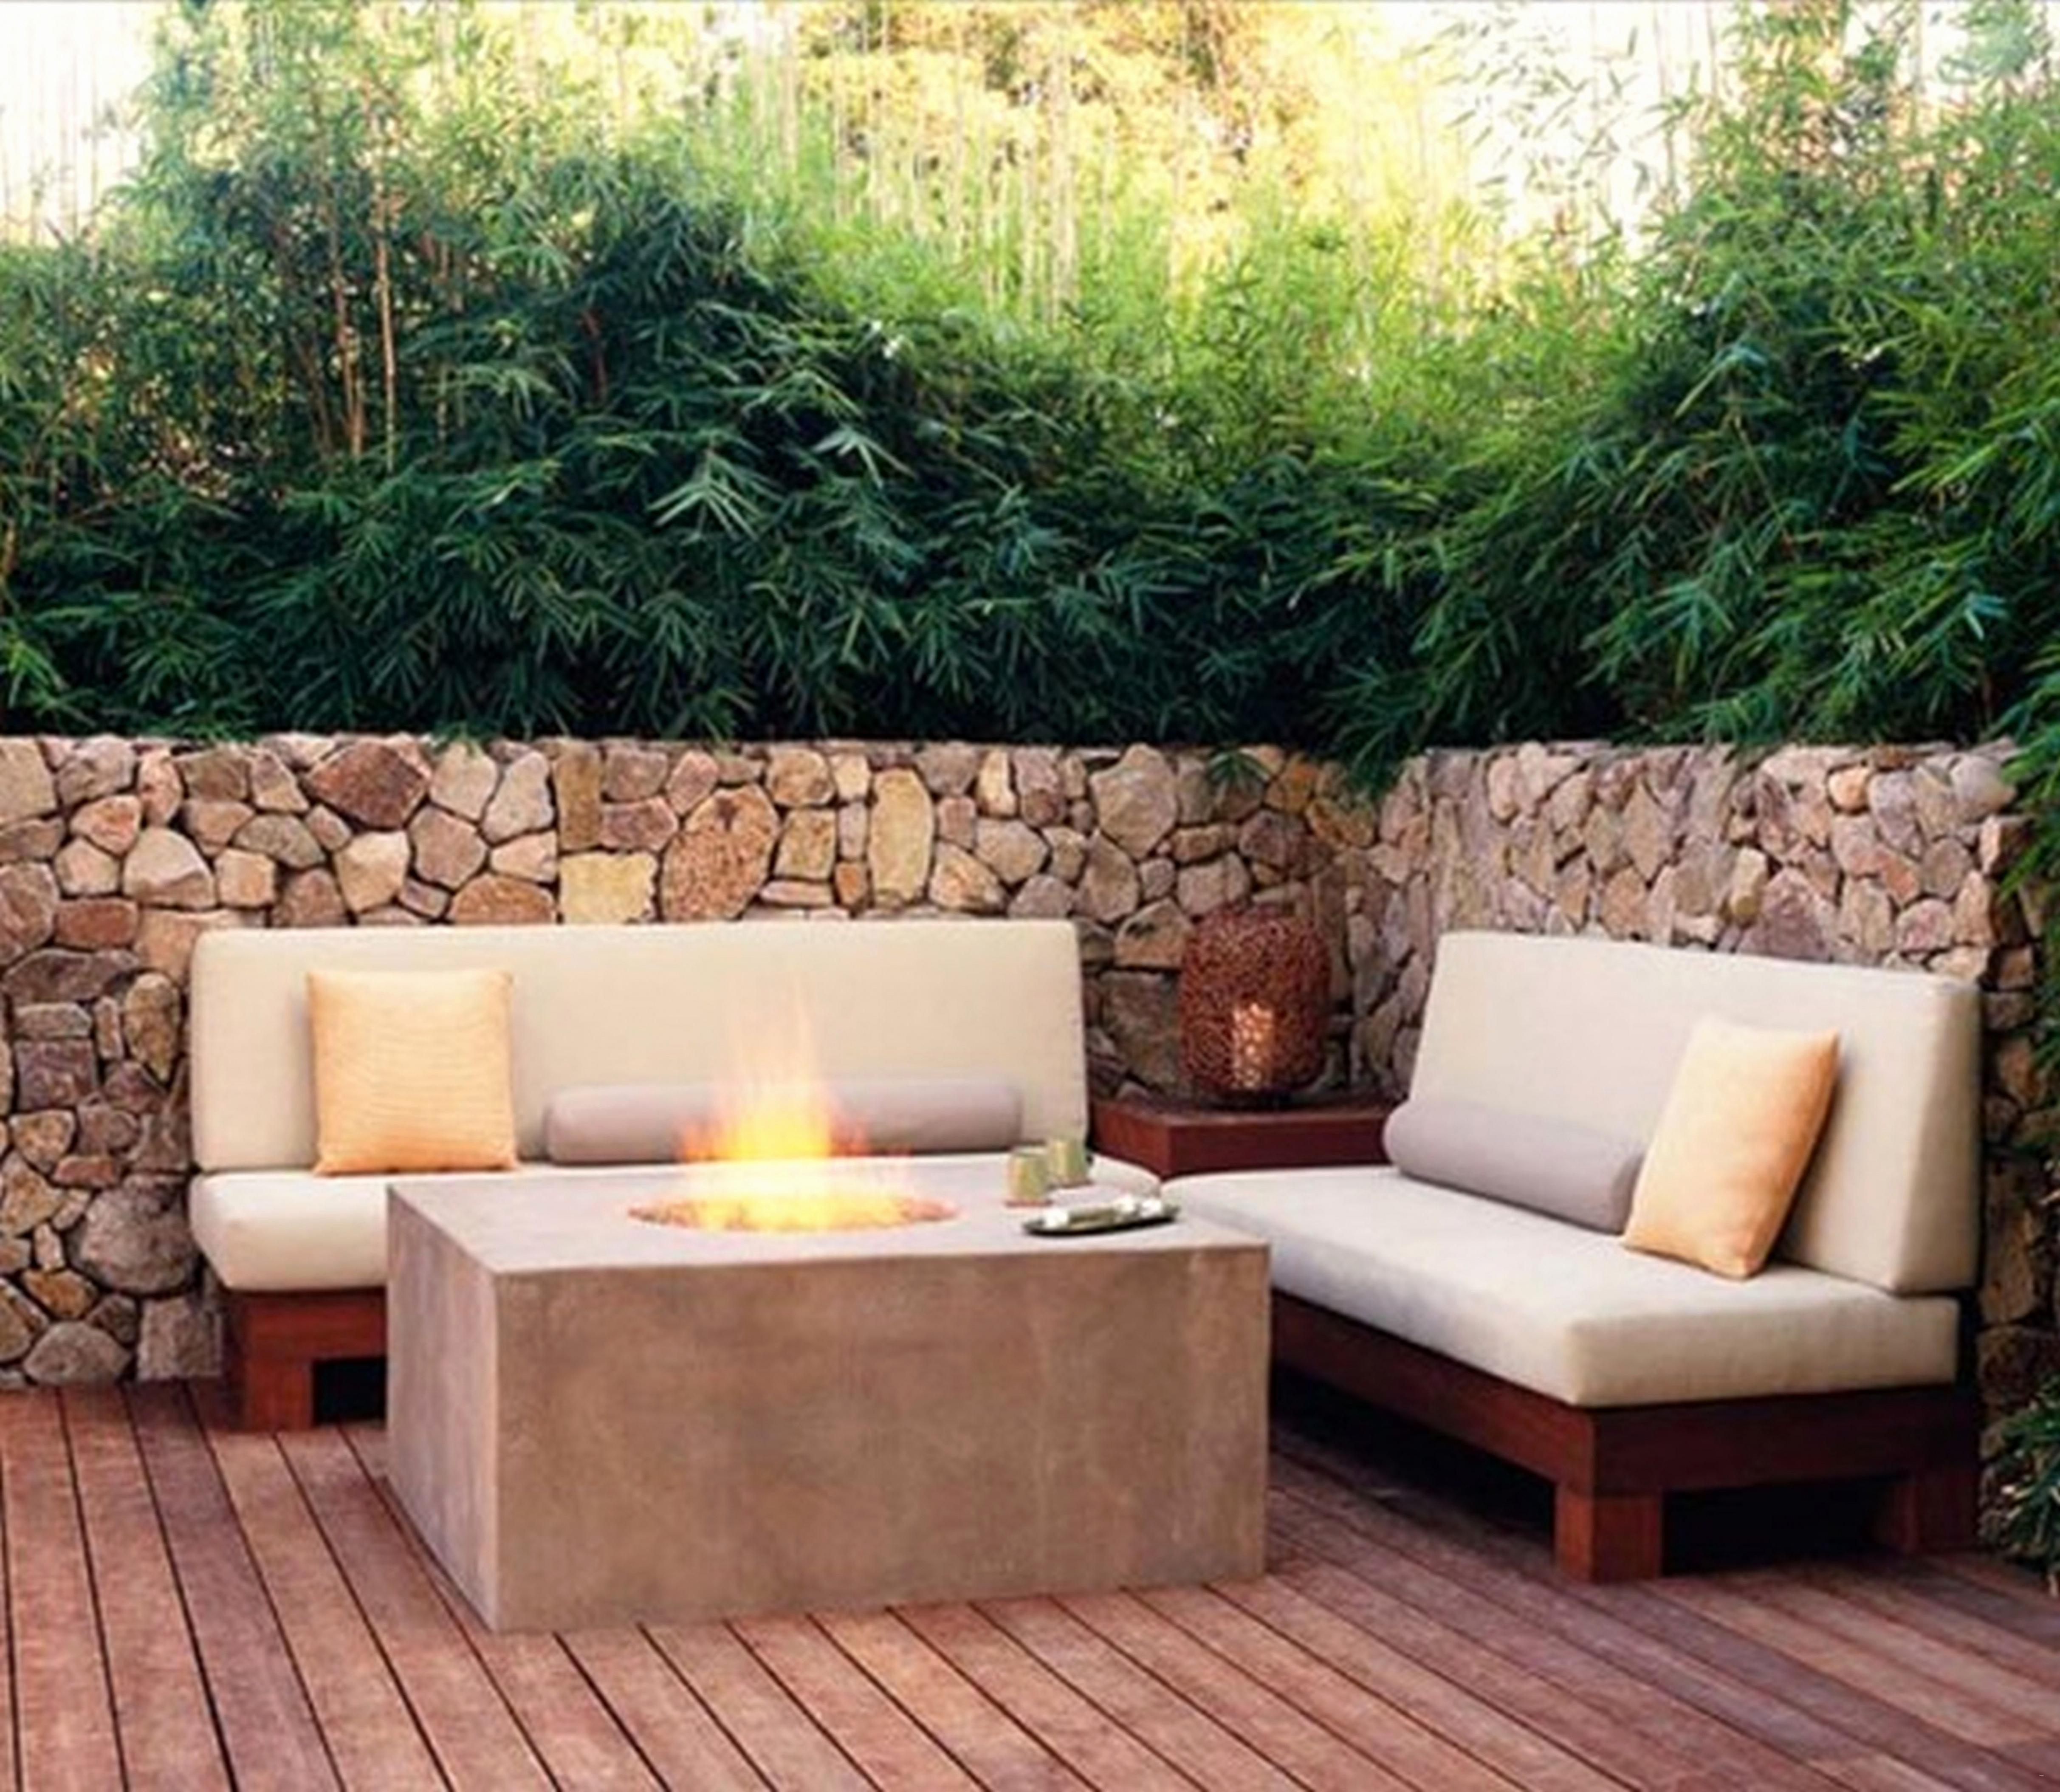 Outdoor Lanterns For Patio Regarding Preferred Brilliant Small Outdoor Fountains For Home Amazing Outdoor Lanterns (View 10 of 20)